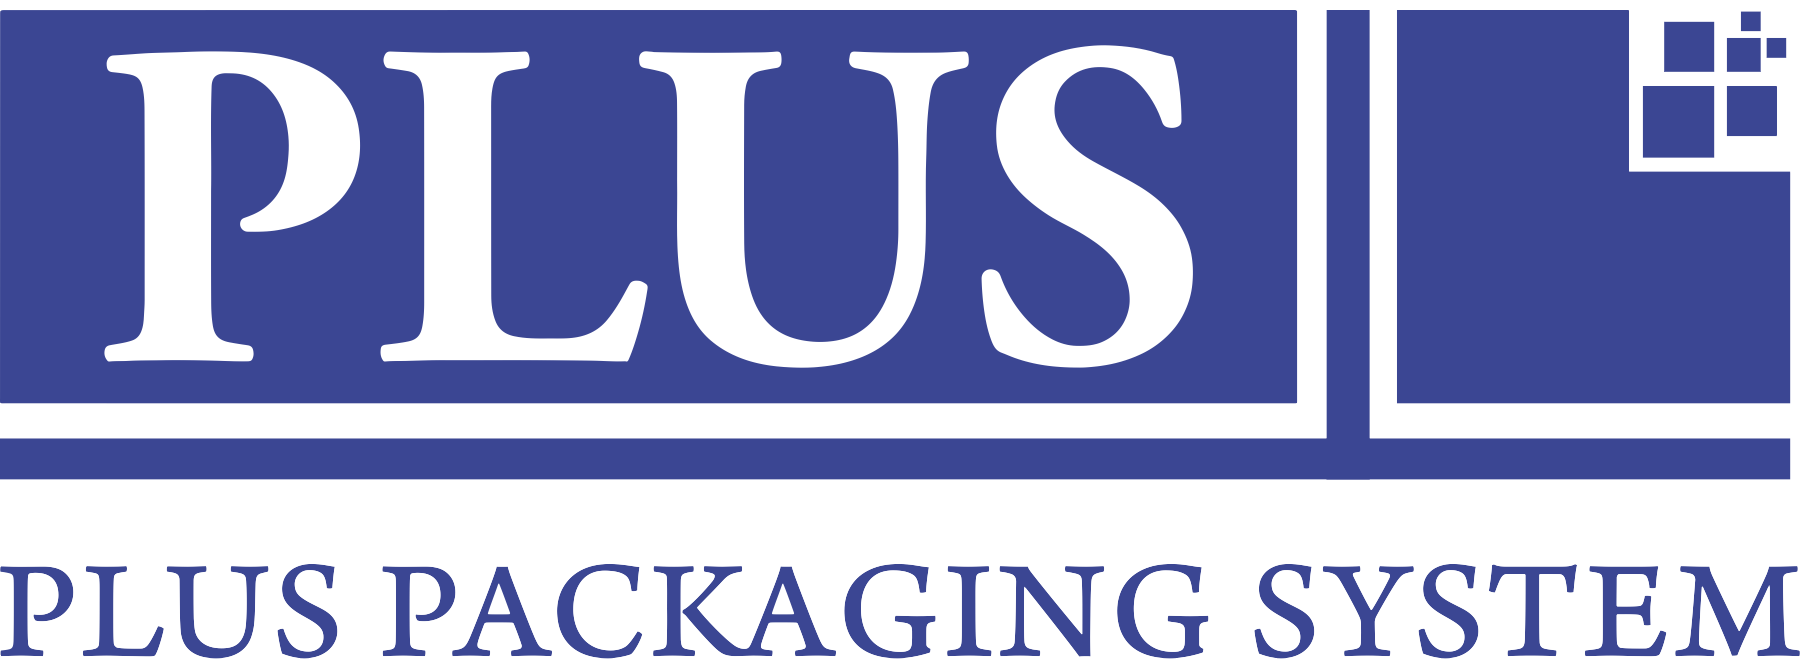 Plus Packaging Systems